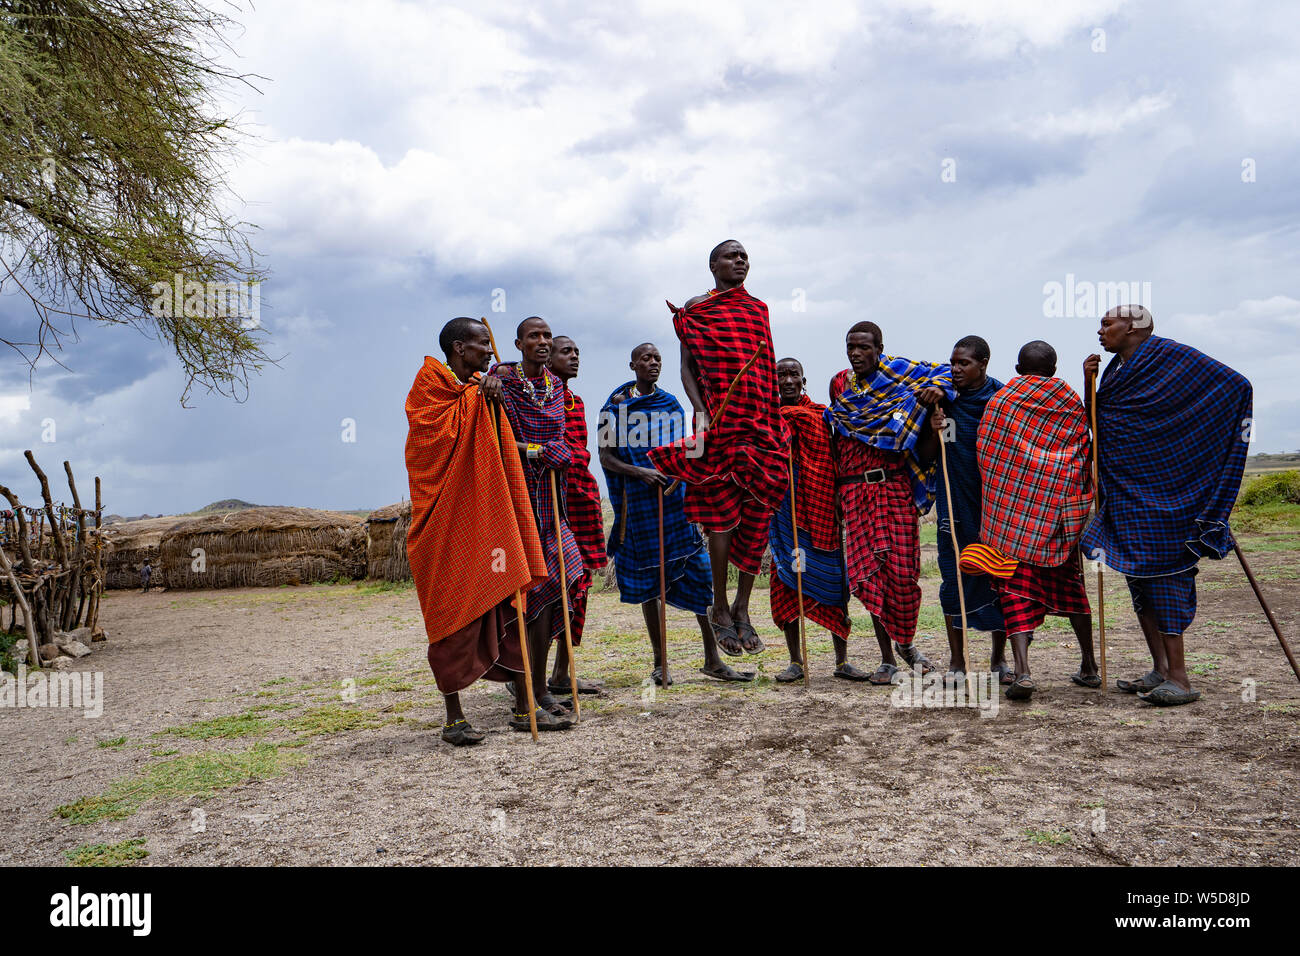 Traditional Masai Jumping Dance at a Masai Village, Tanzania, East Africa Stock Photo